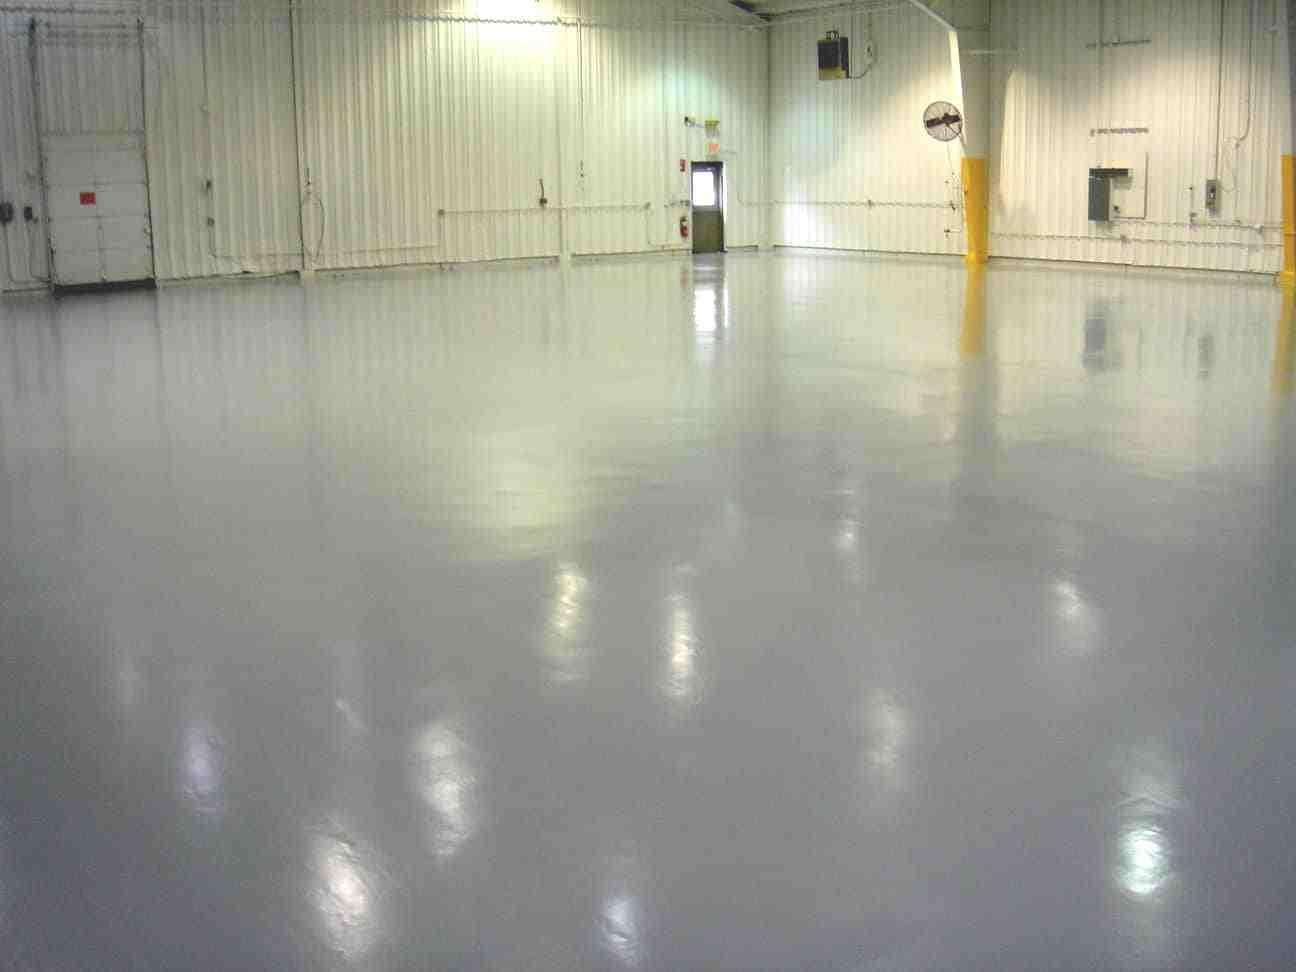 Epoxy Flooring Polished Concrete Floors Commercial Industrial - How expensive is epoxy flooring